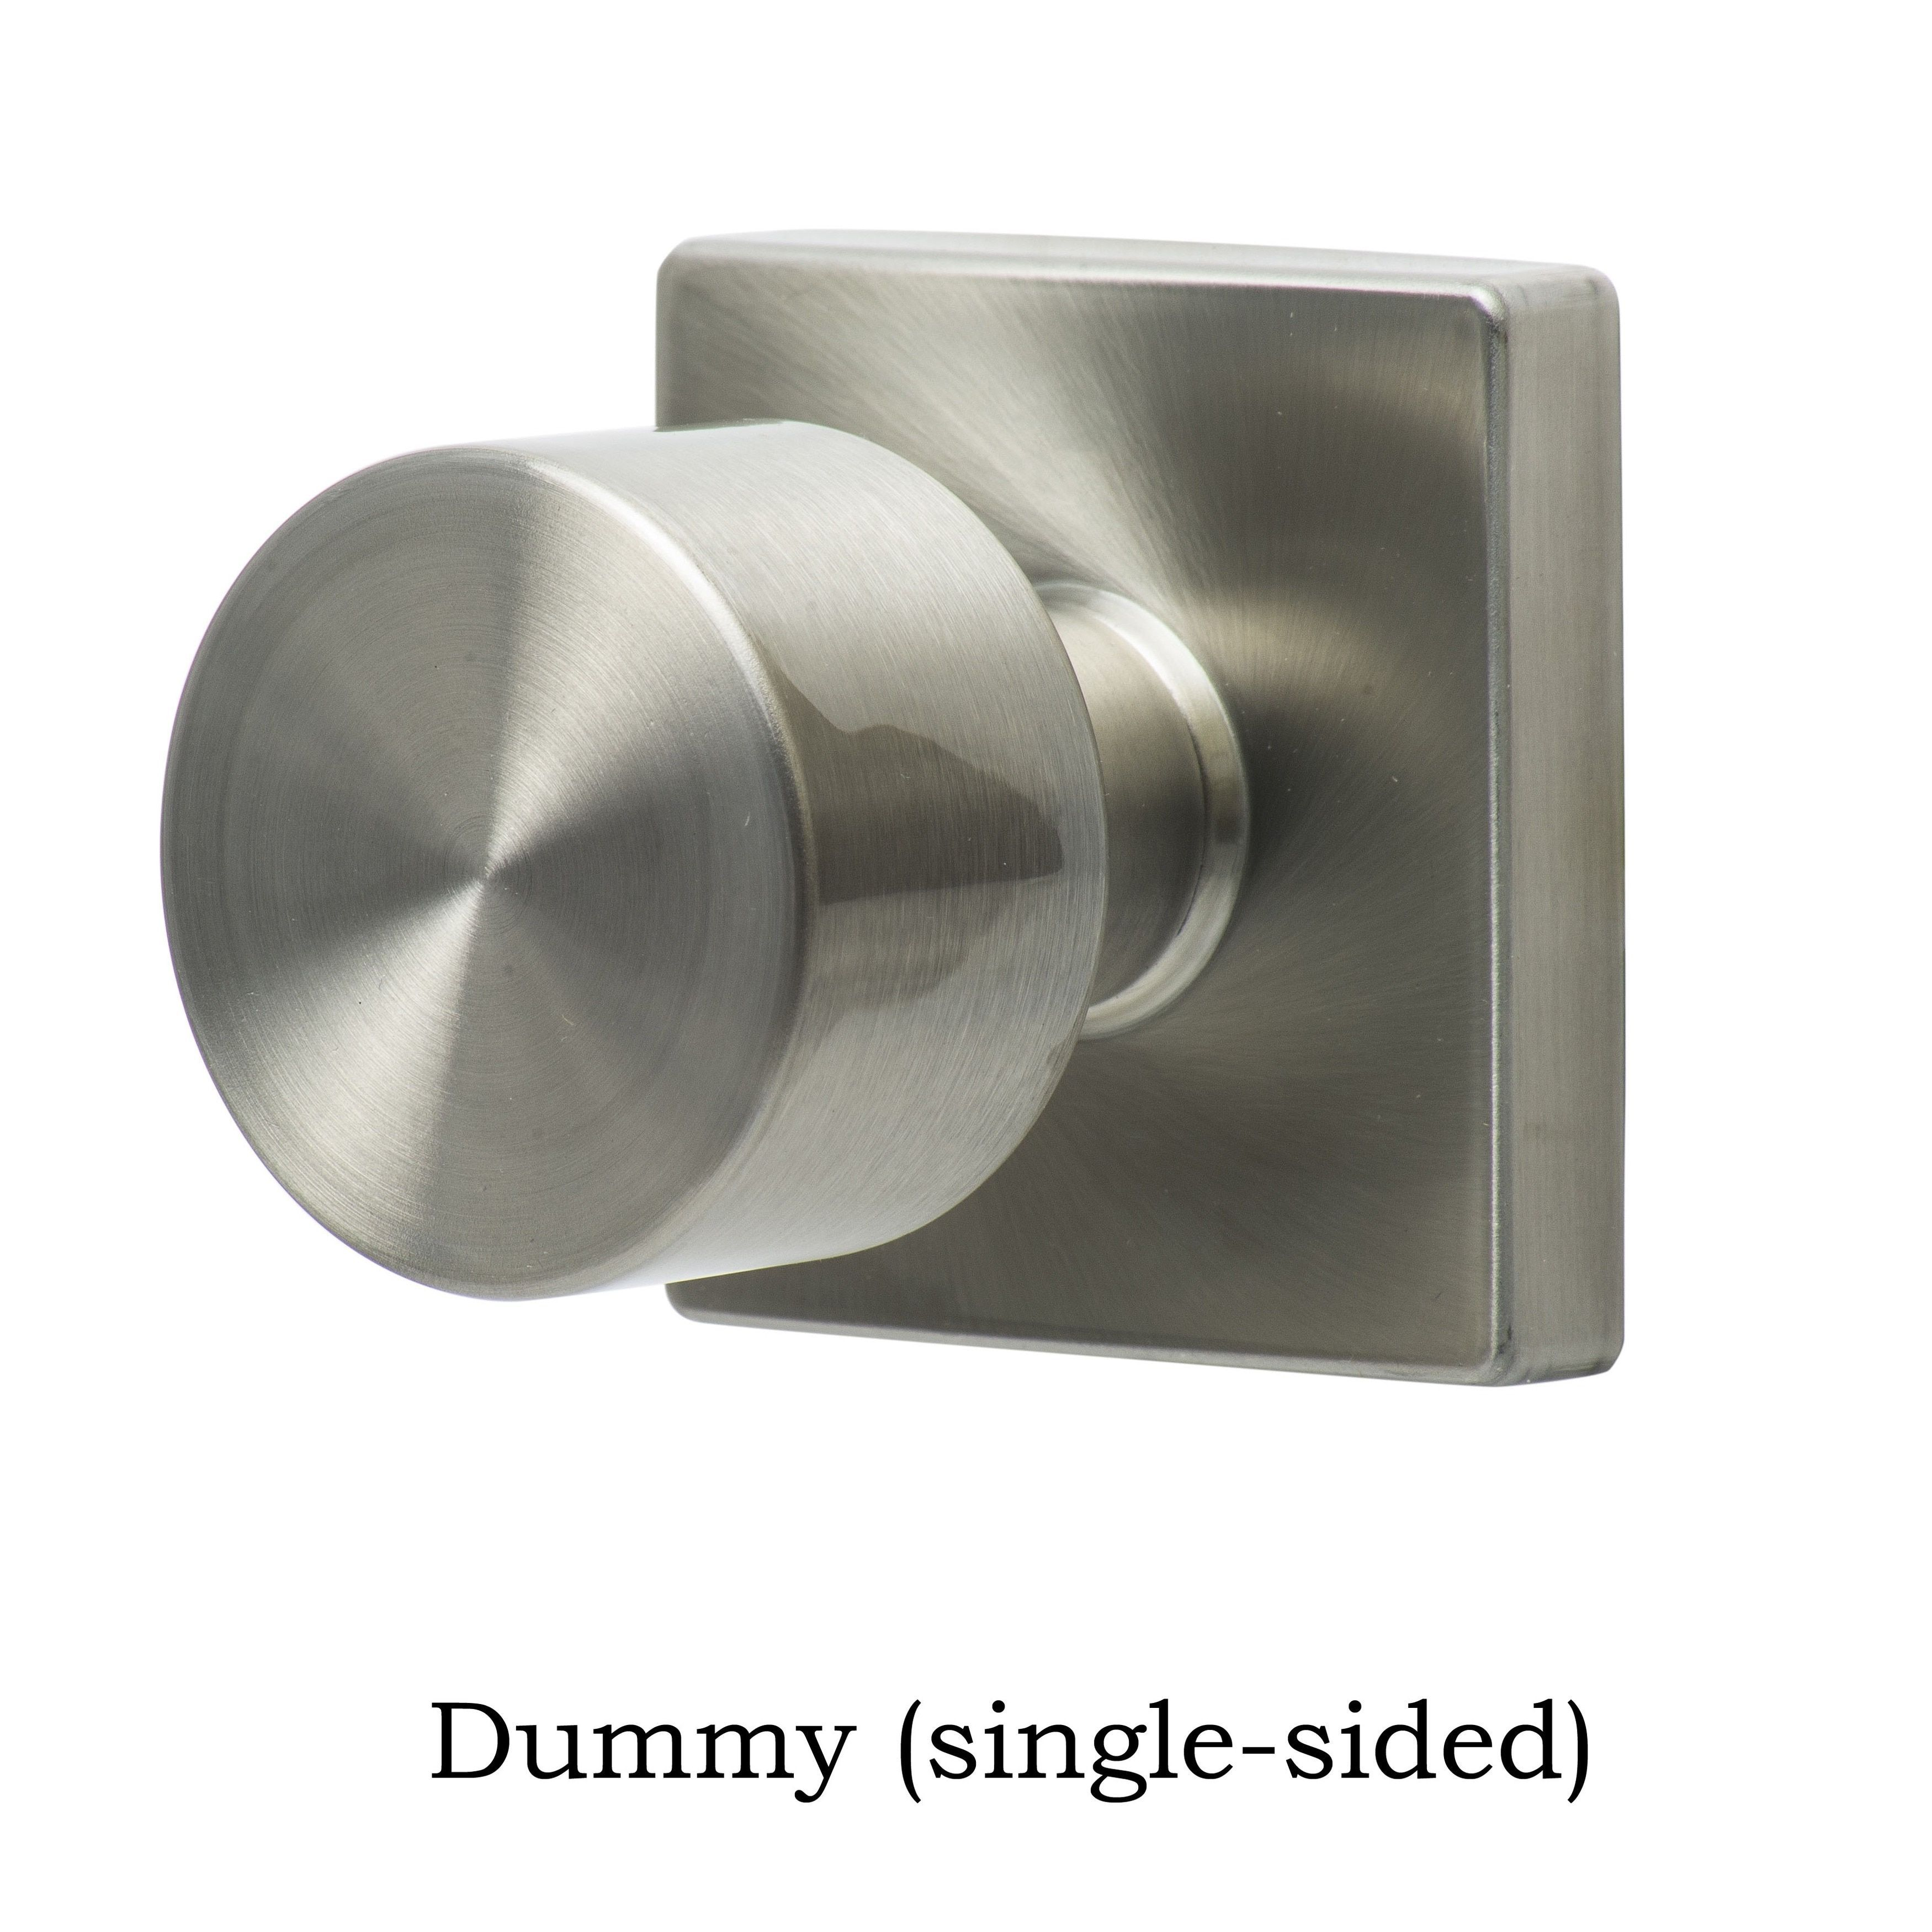 Sure Loc Bergen Stainless Steel Square Door Knob (Dummy Functin (one Sided)